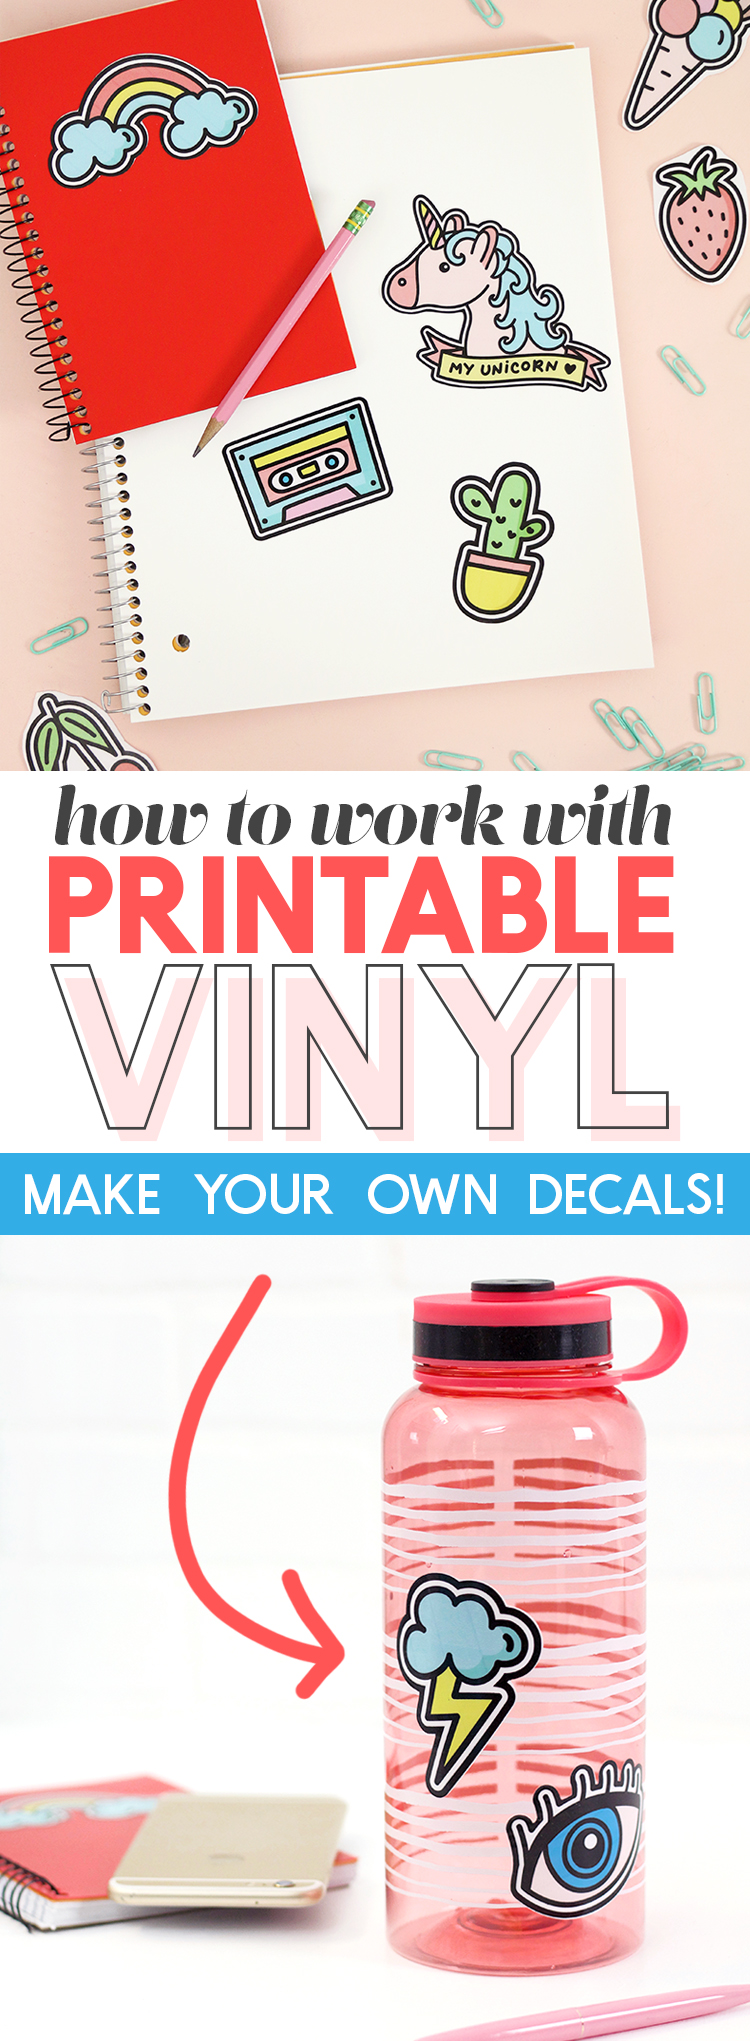 photo relating to Printable Window Sticker titled How in direction of Hard work with Printable Vinyl: Do it yourself Vinyl Stickers